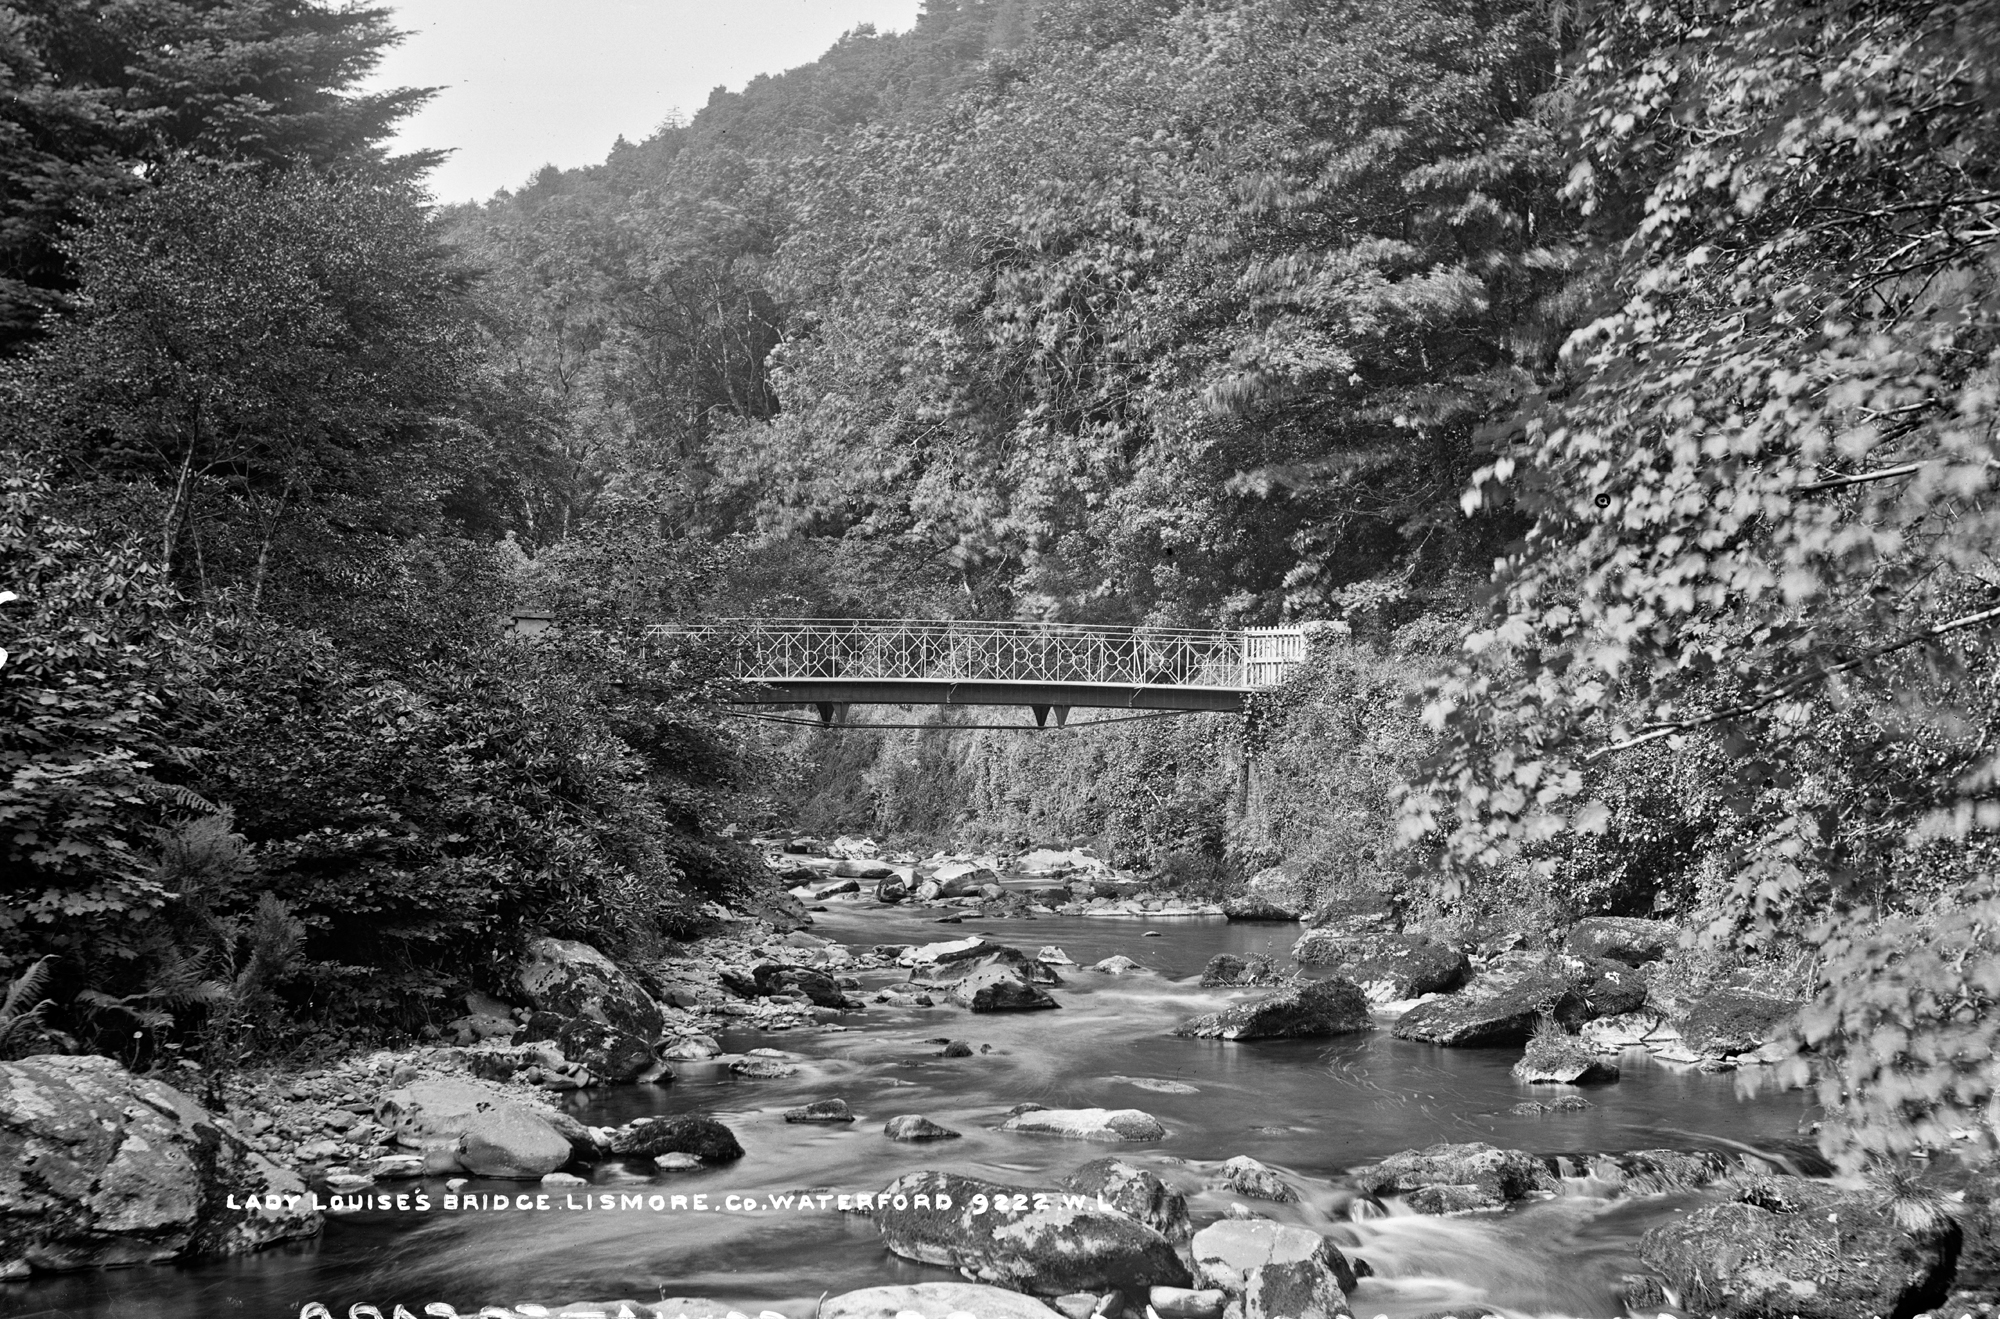 Lady Louise's Bridge, Lismore, Co. Waterford